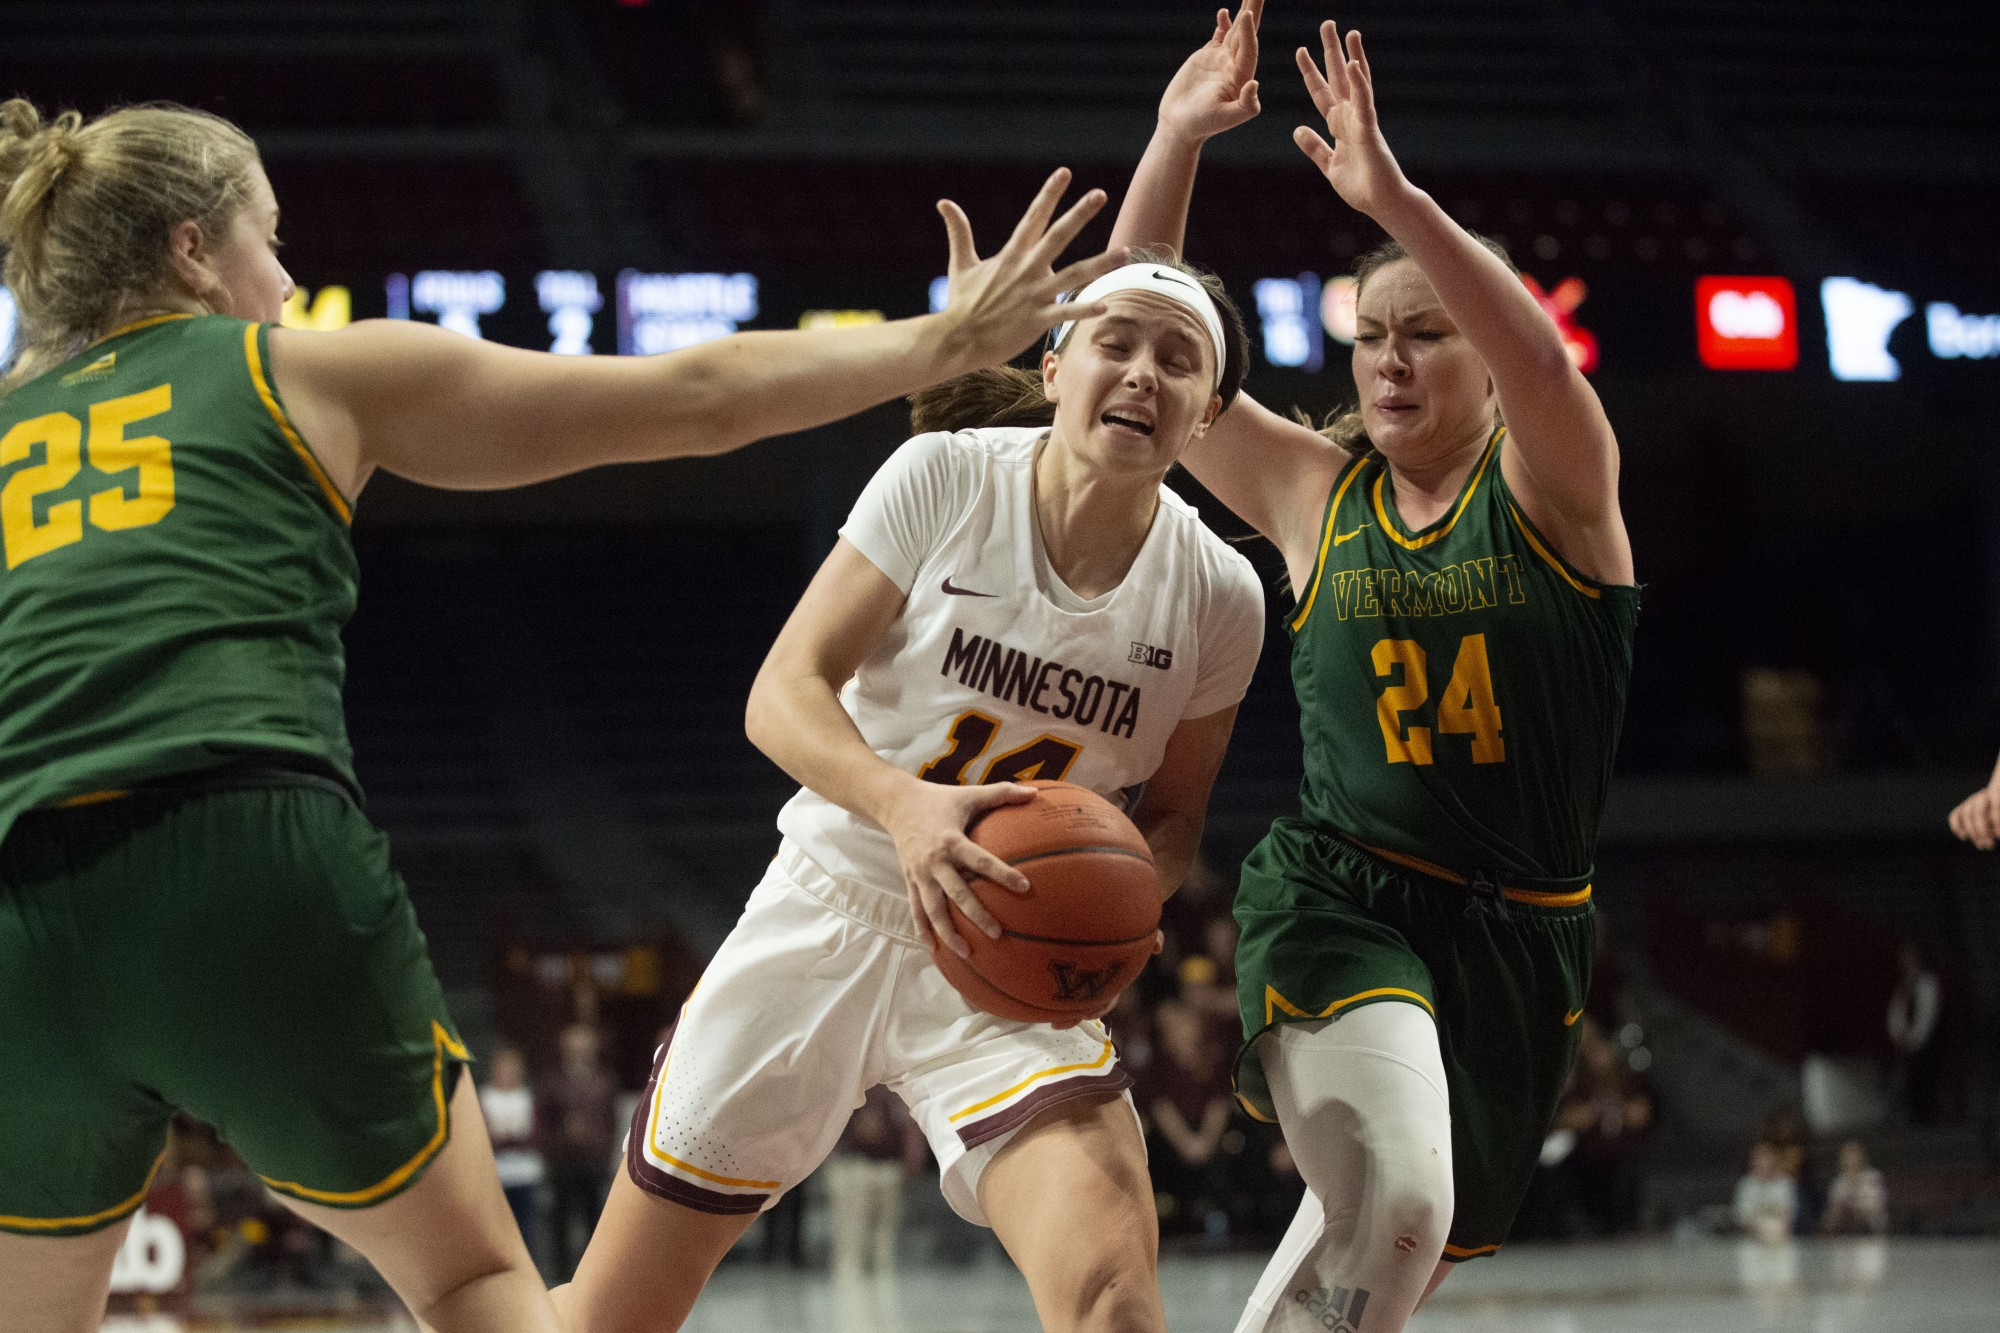 Guard Sara Scalia drives towards the hoop at Williams Arena on Sunday, Nov. 10. The Gophers defeated Vermont 90-58.